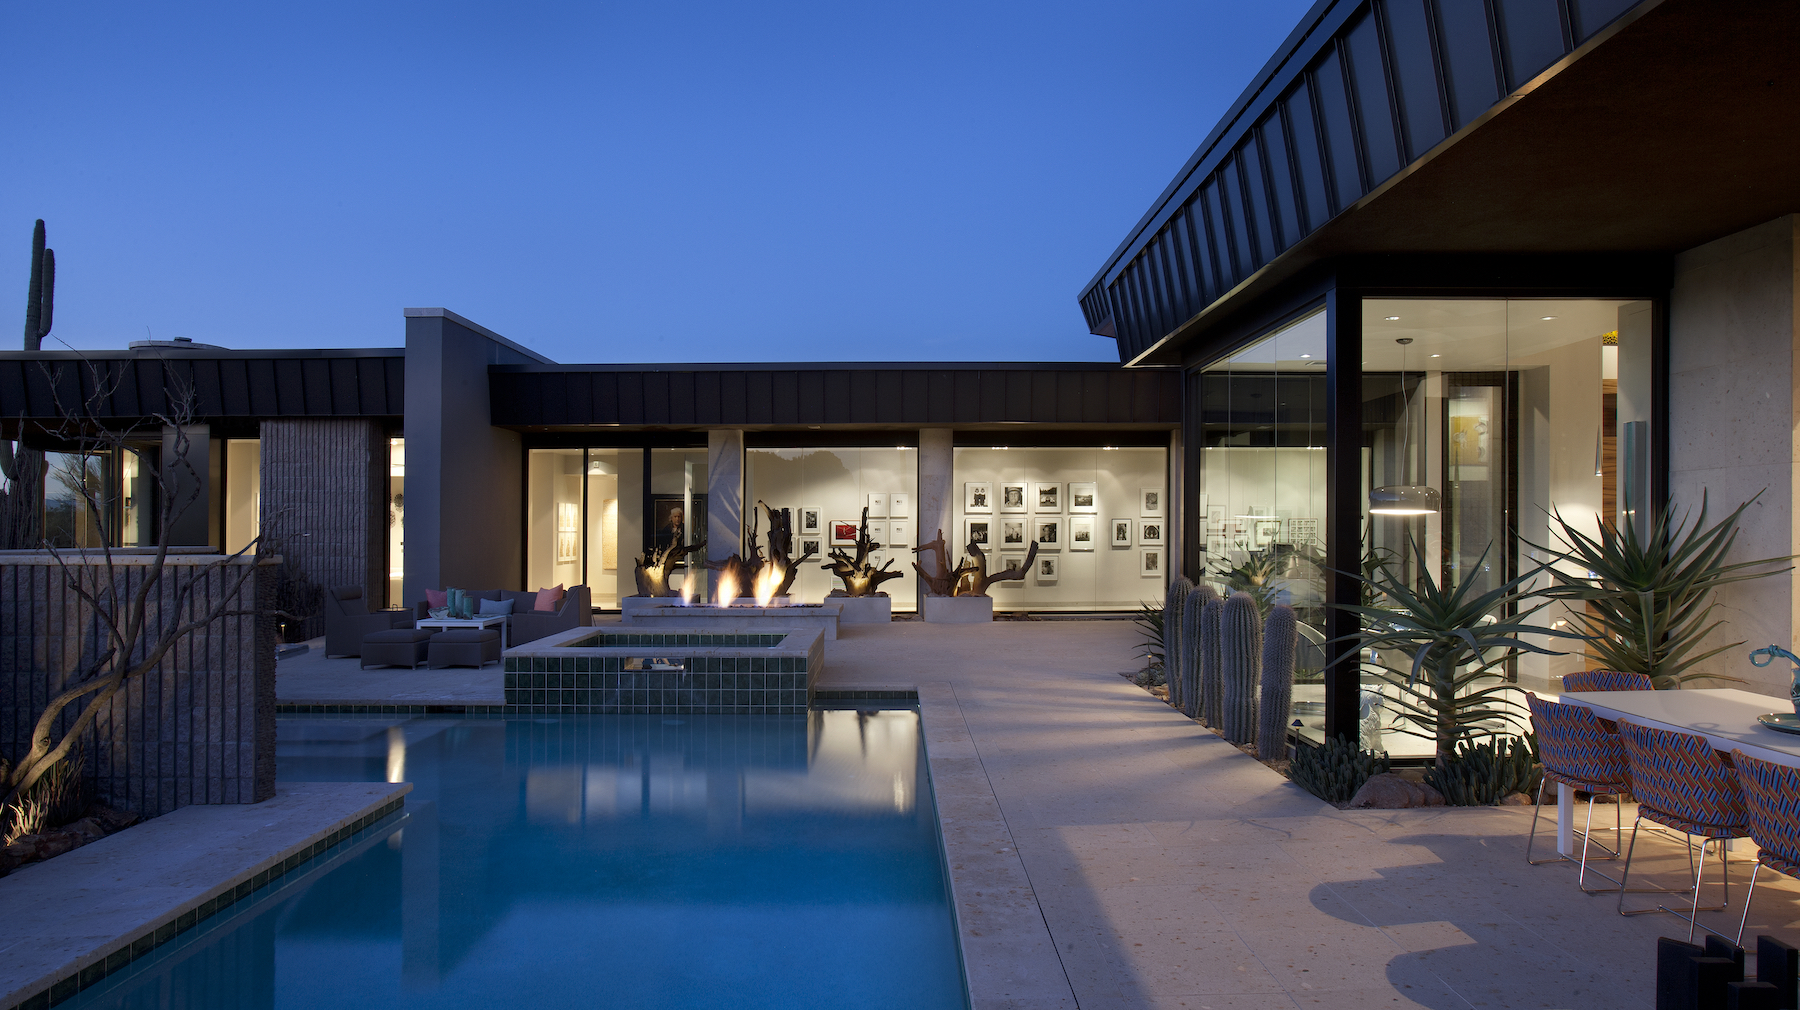 Desert Modern architecture by Drewett Works